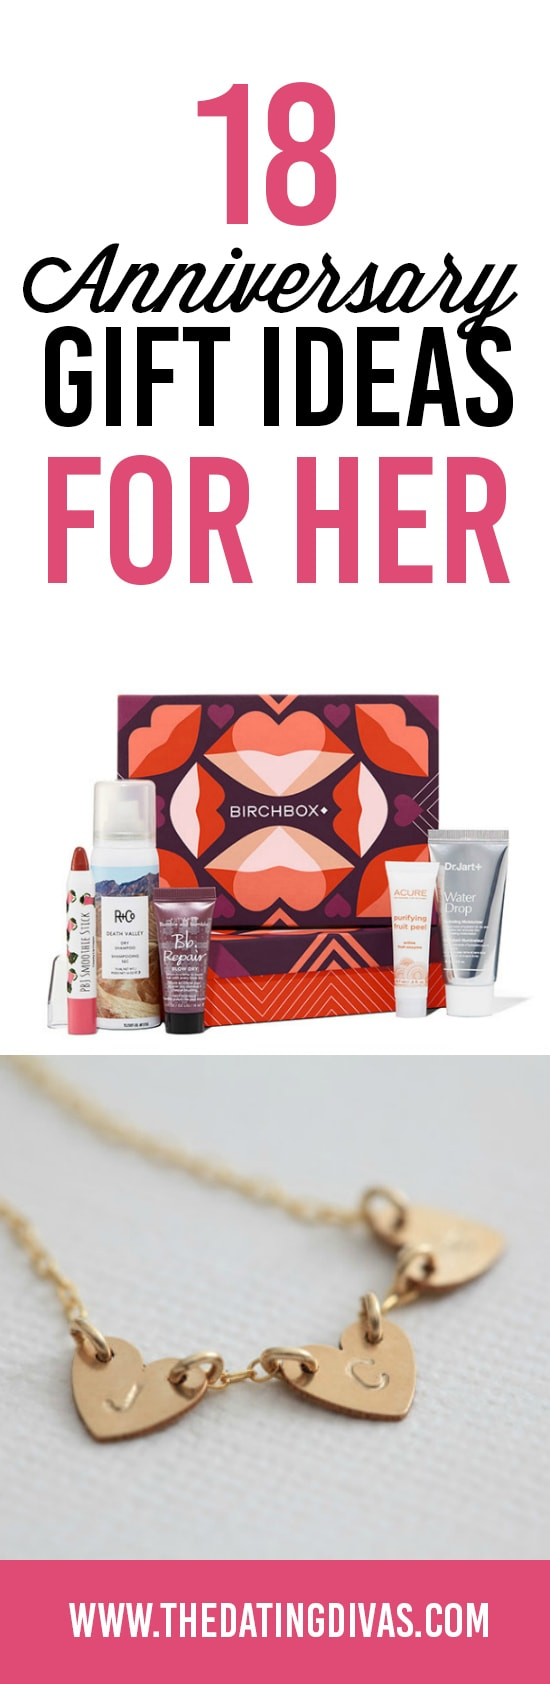 18 Anniversary Gift Ideas for Her